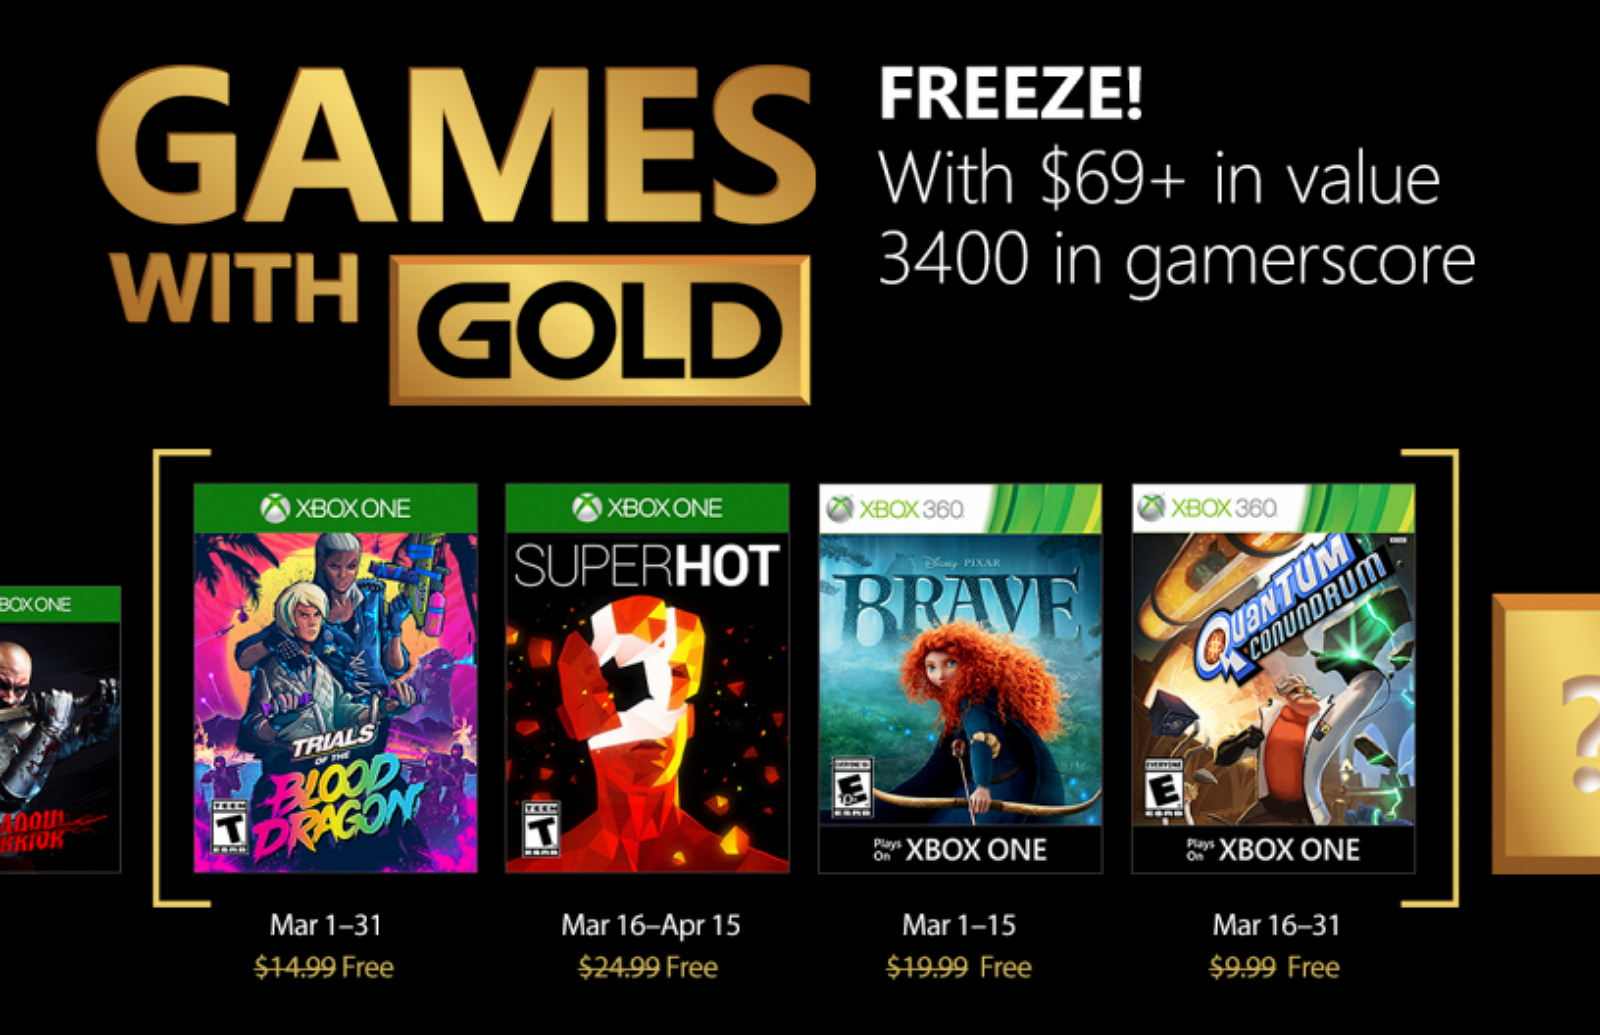 Xbox Games with Gold for March 2018